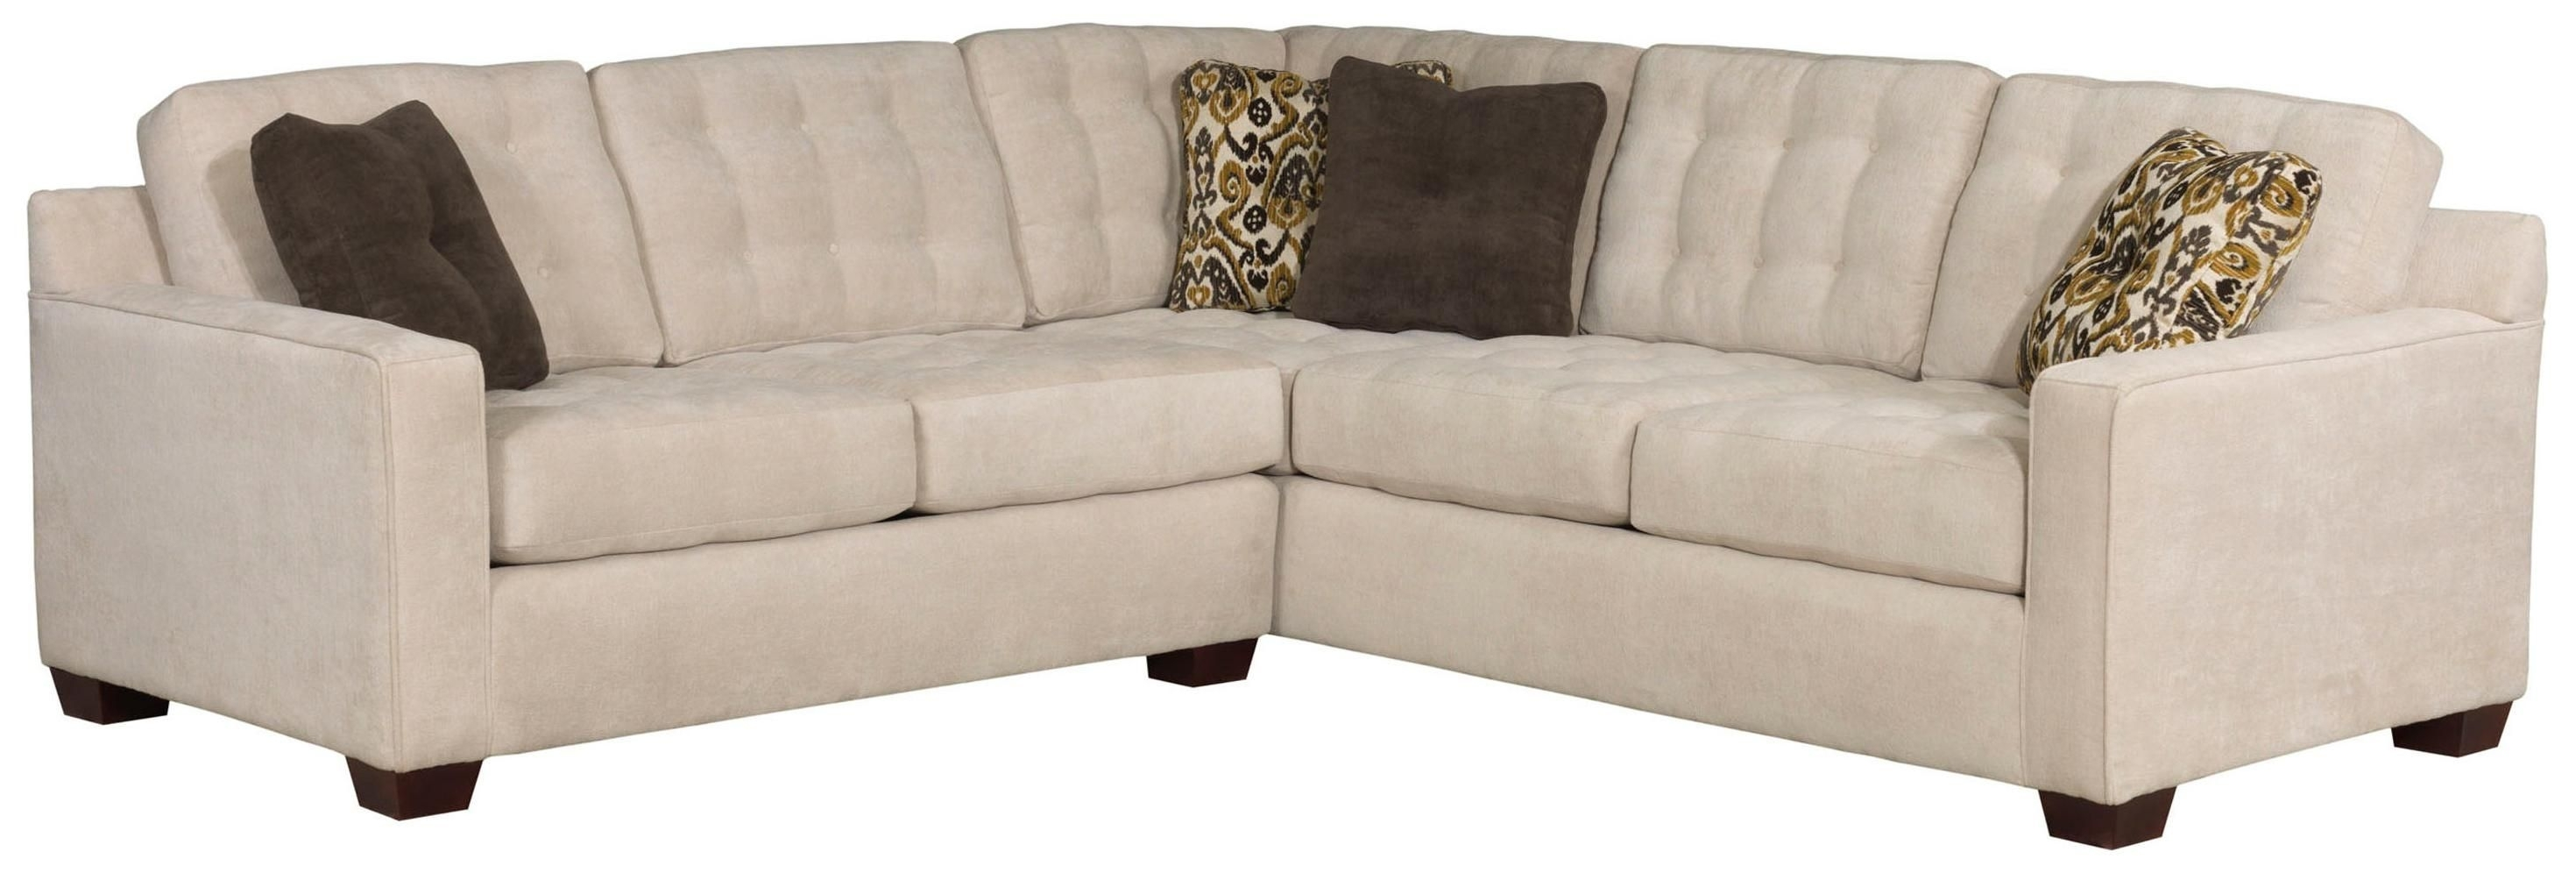 Tribeca Sectional Sofabroyhill Furniture #hudsonsfurniture In Sectional Sofas At Broyhill (View 15 of 15)